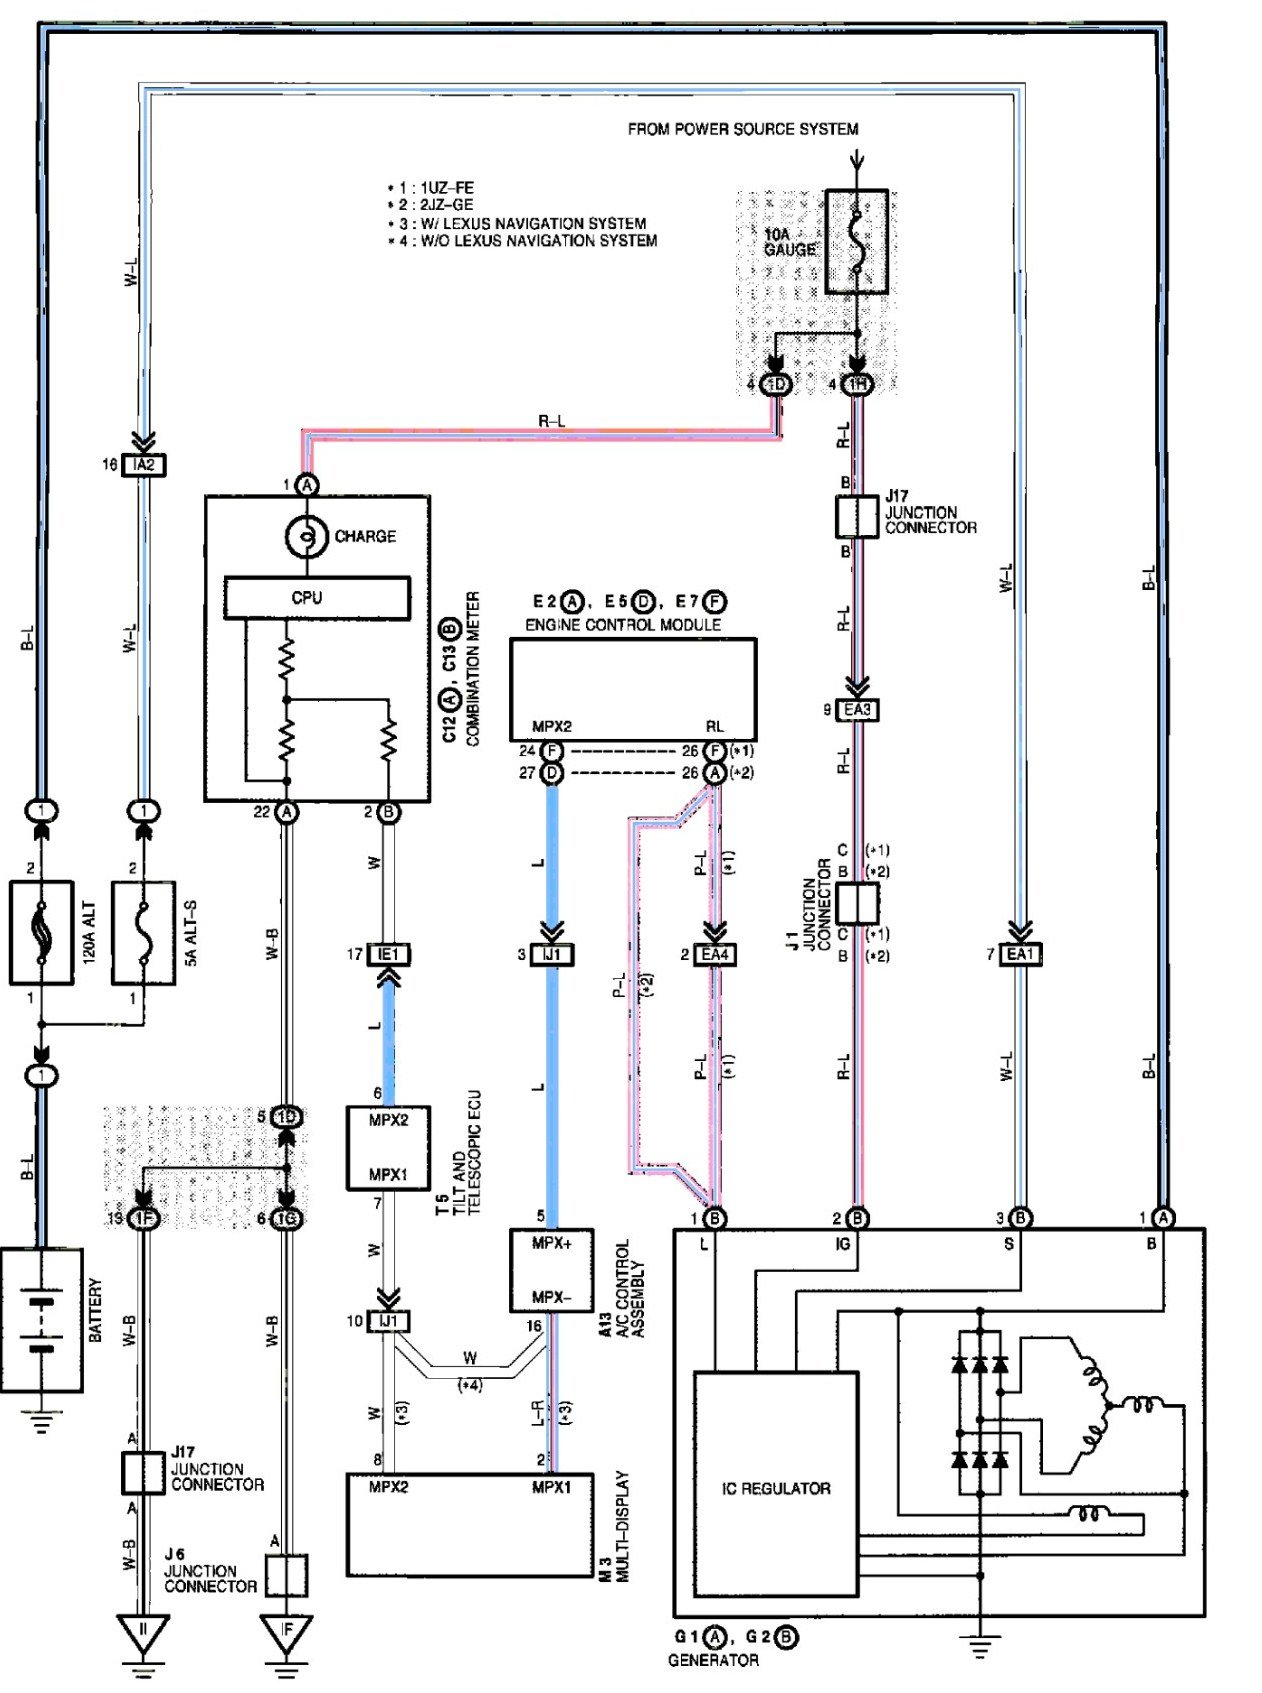 2010 02 26_152407_alt_0000 wassup guys! i have an electrical problem with my 2000 lexus gs300 04 lexus gs300 wiring diagram of abs system at honlapkeszites.co